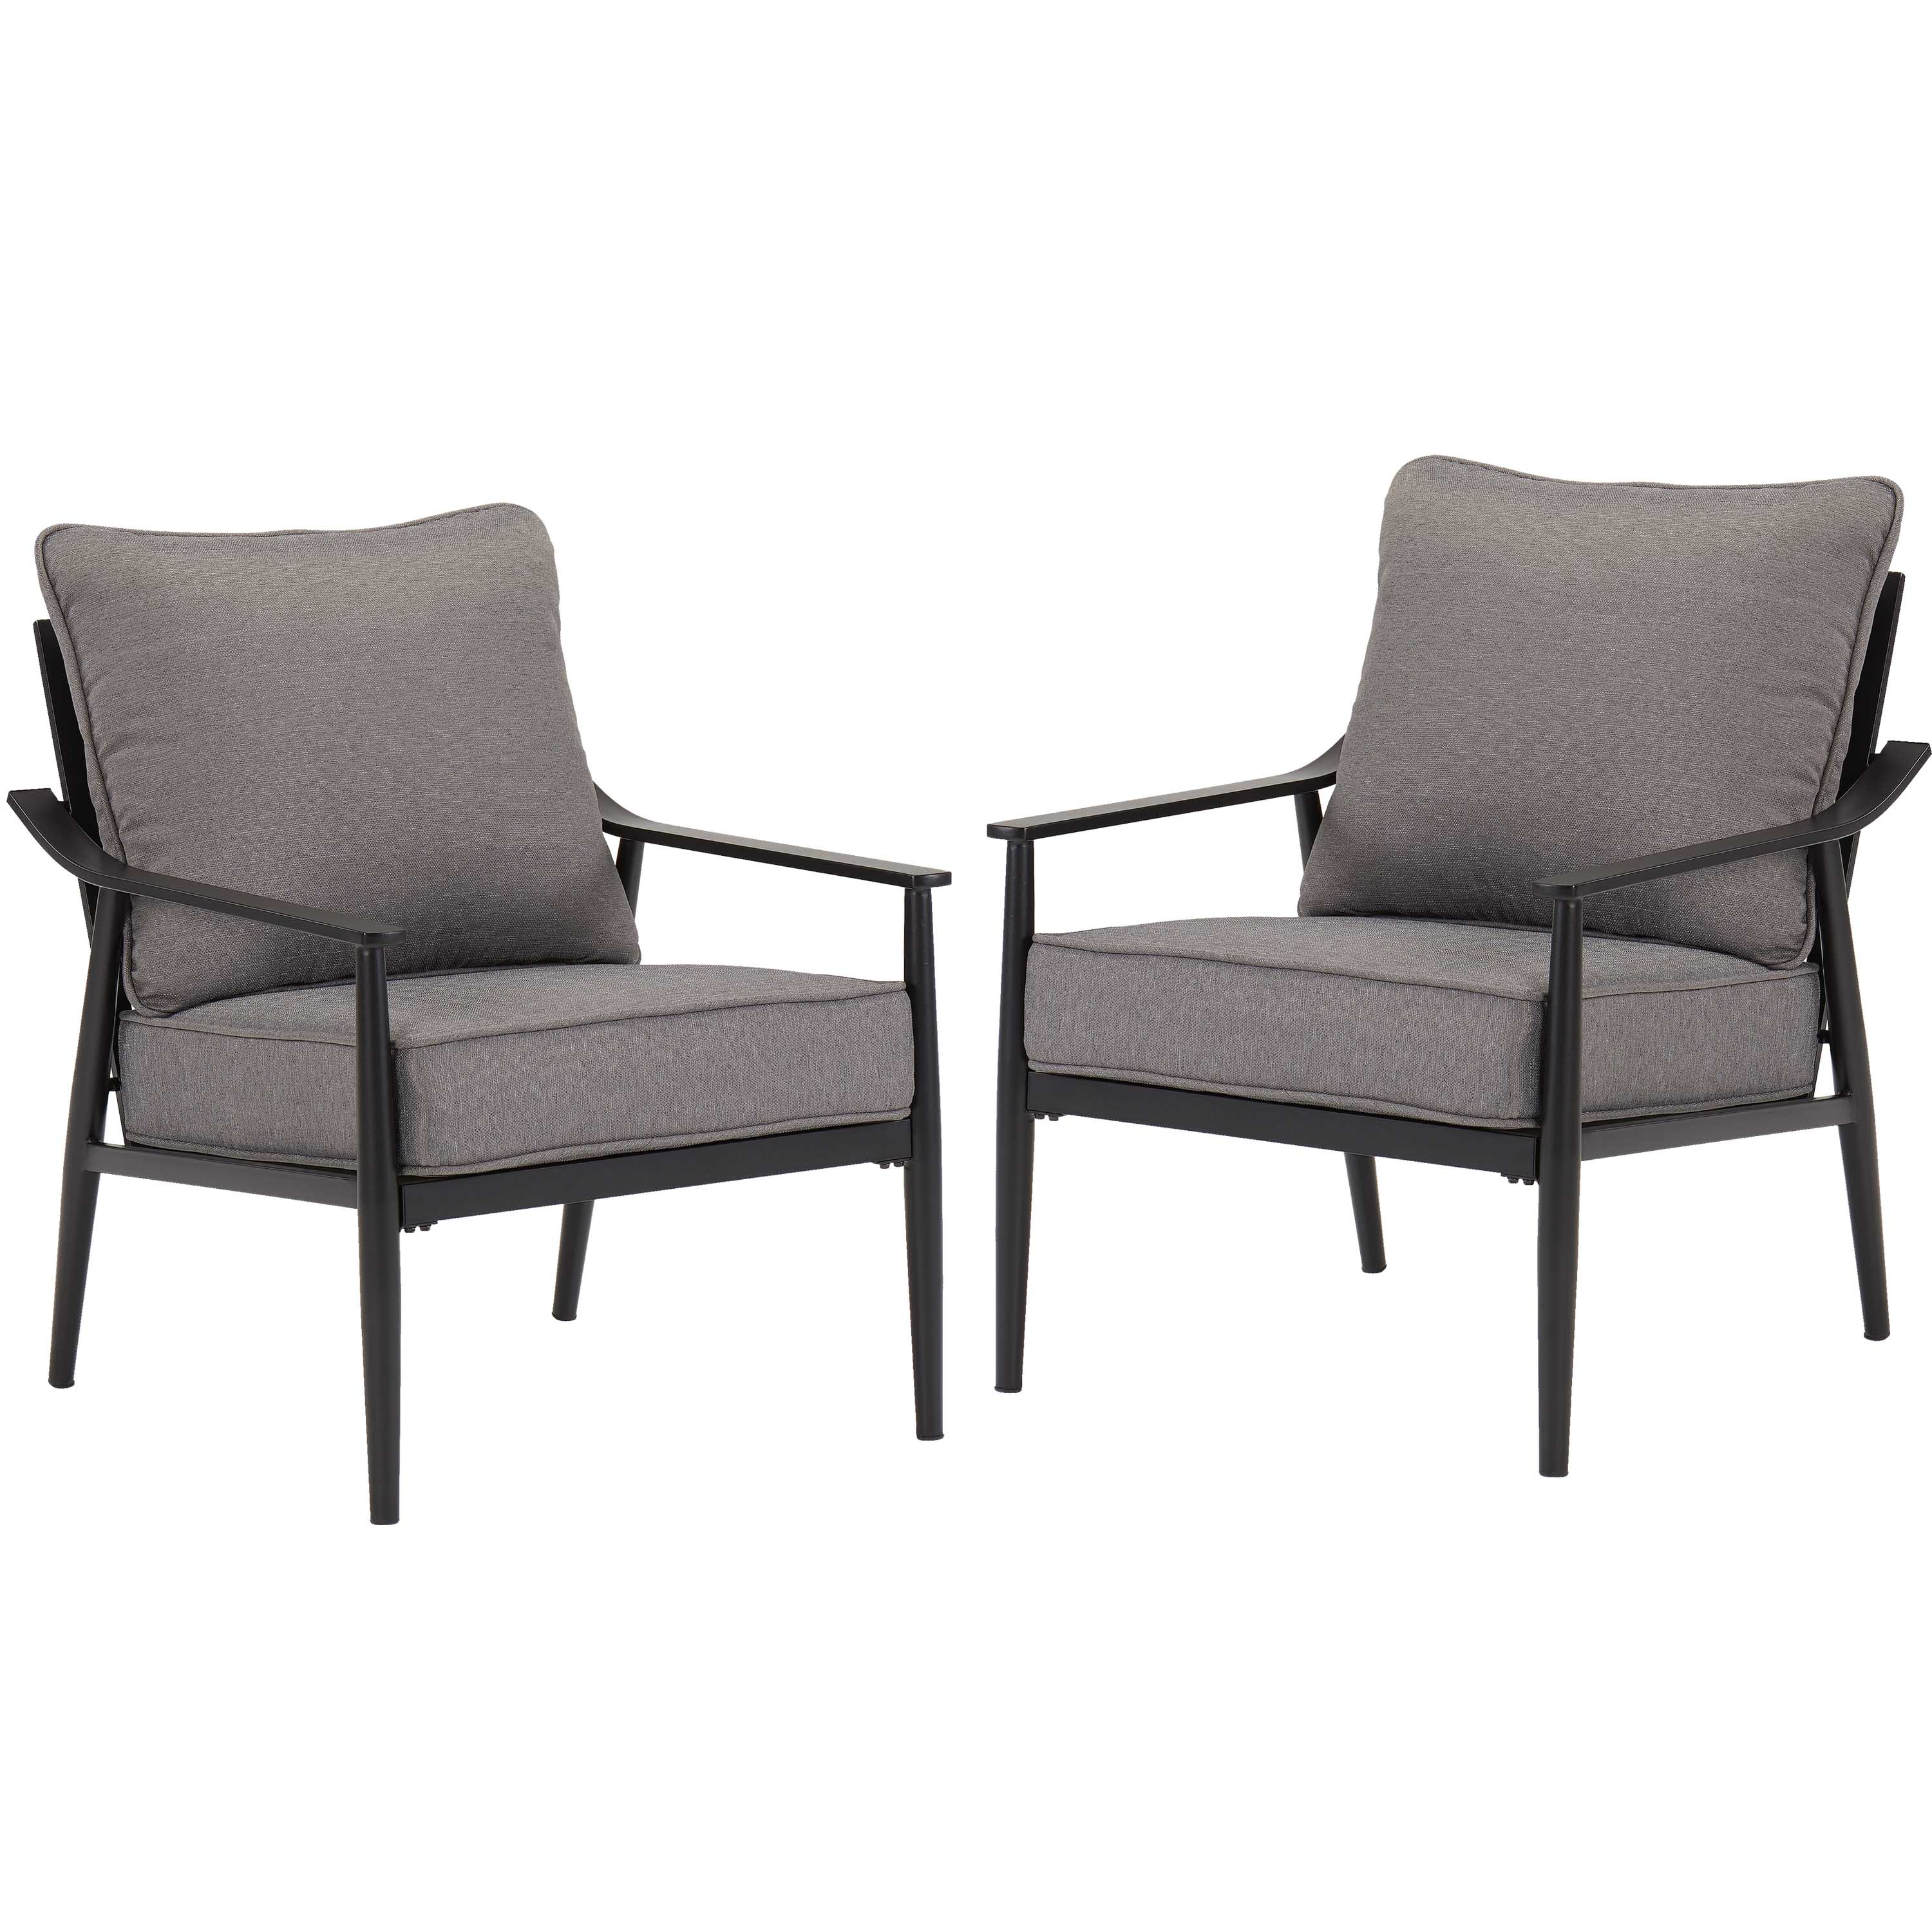 Lounge Chairs In White With Grey Cushions Within Best And Newest Better Homes & Gardens Acadia Patio Lounge Chairs With Gray Cushions, Set Of 2 – Walmart (Gallery 12 of 25)